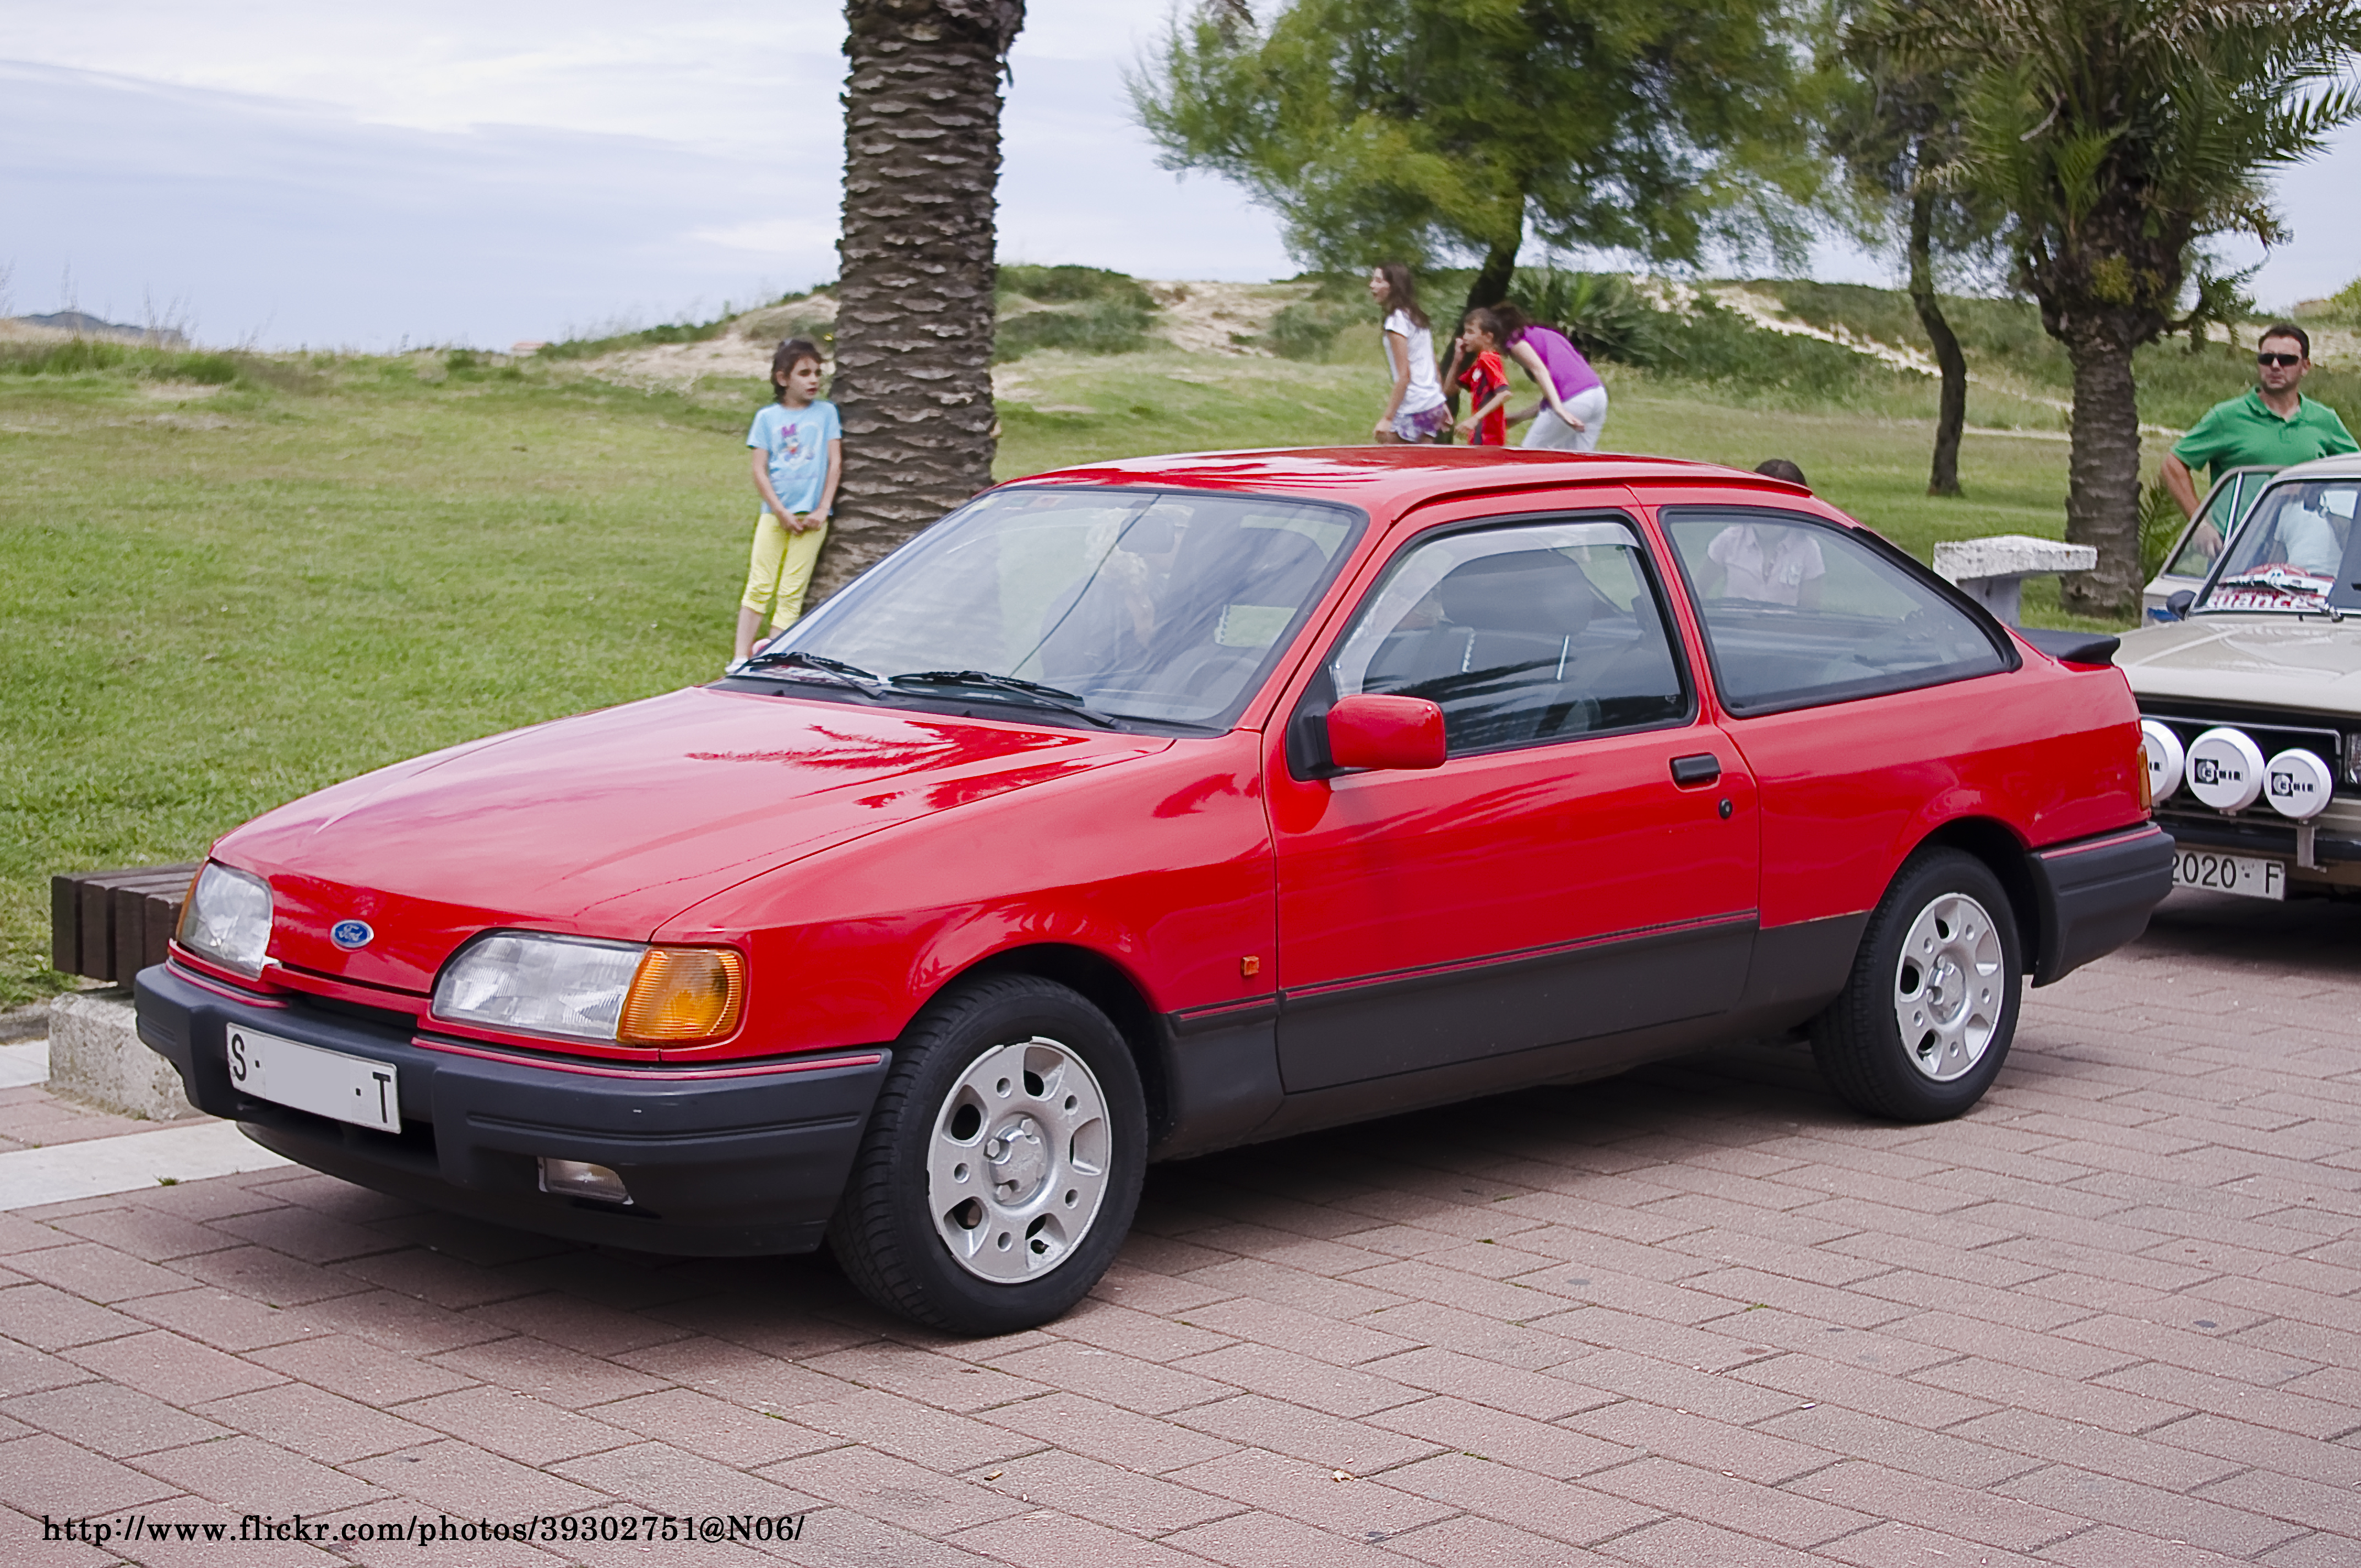 Mb S Coupe >> File:1989 Ford Sierra 2.0i S (6222336065).jpg - Wikimedia Commons